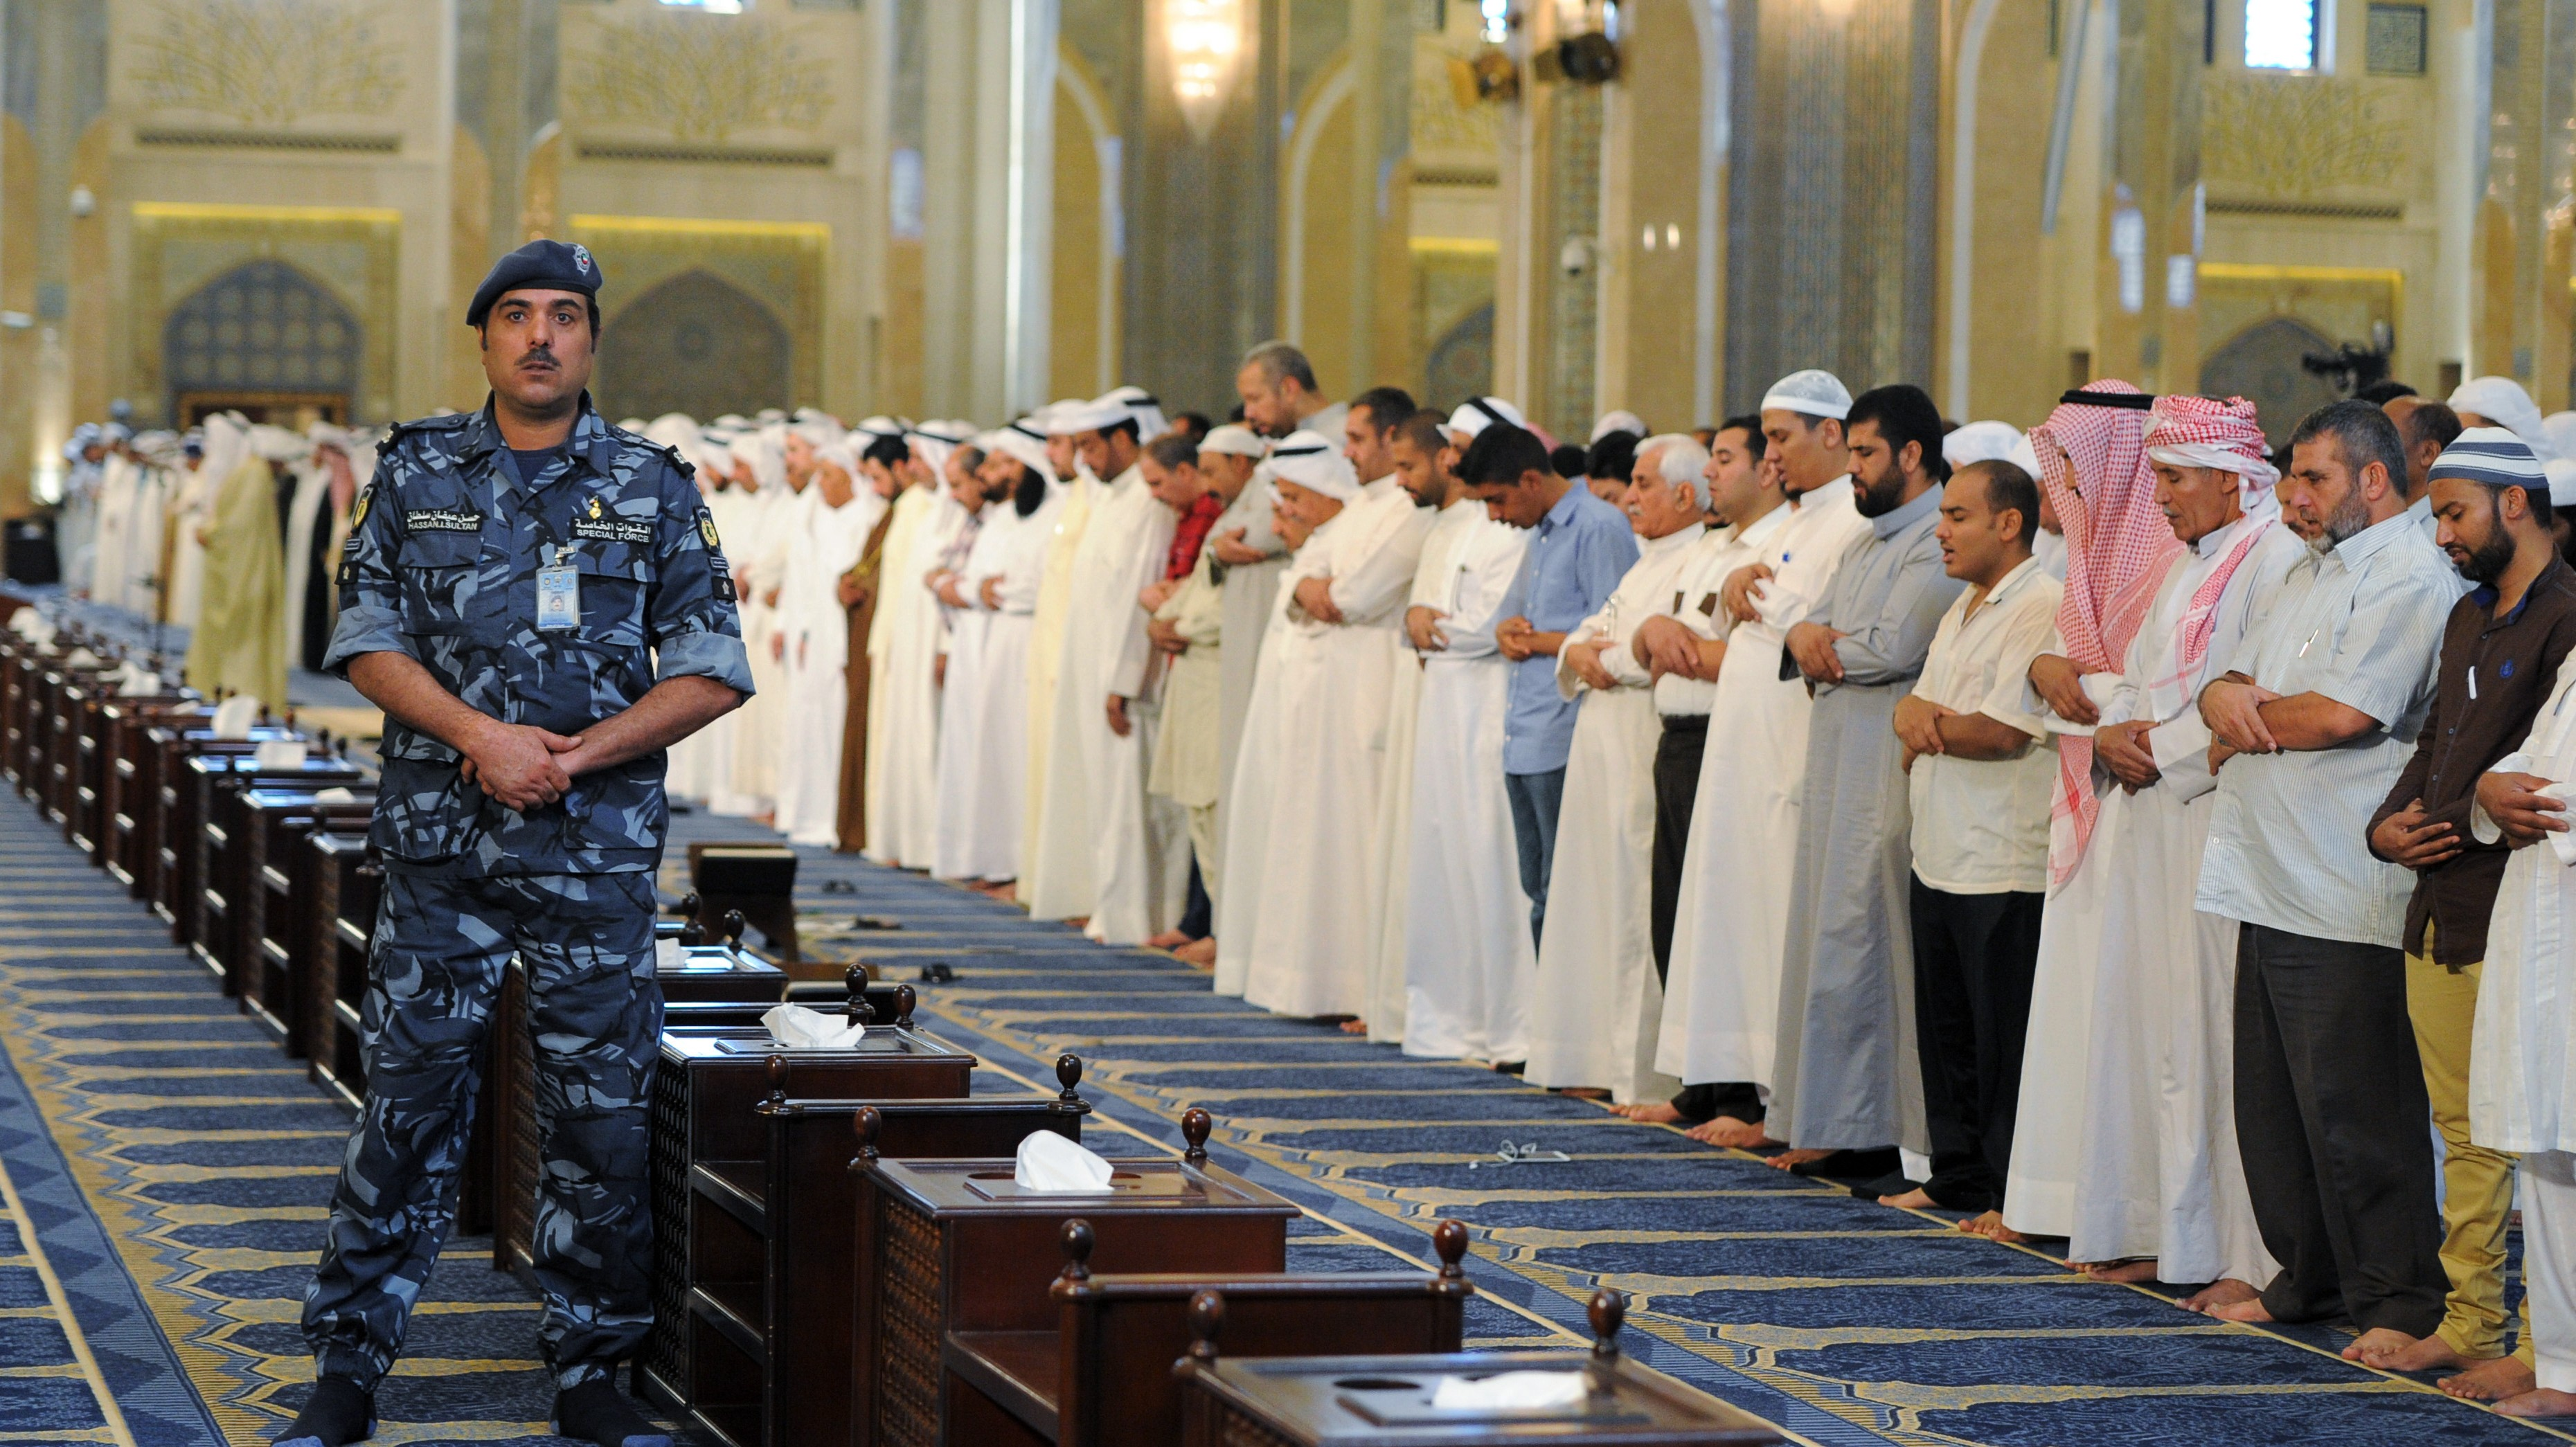 Kuwait Anti-Terror Program Prepares to Harvest the DNA of Citizens and Foreigners